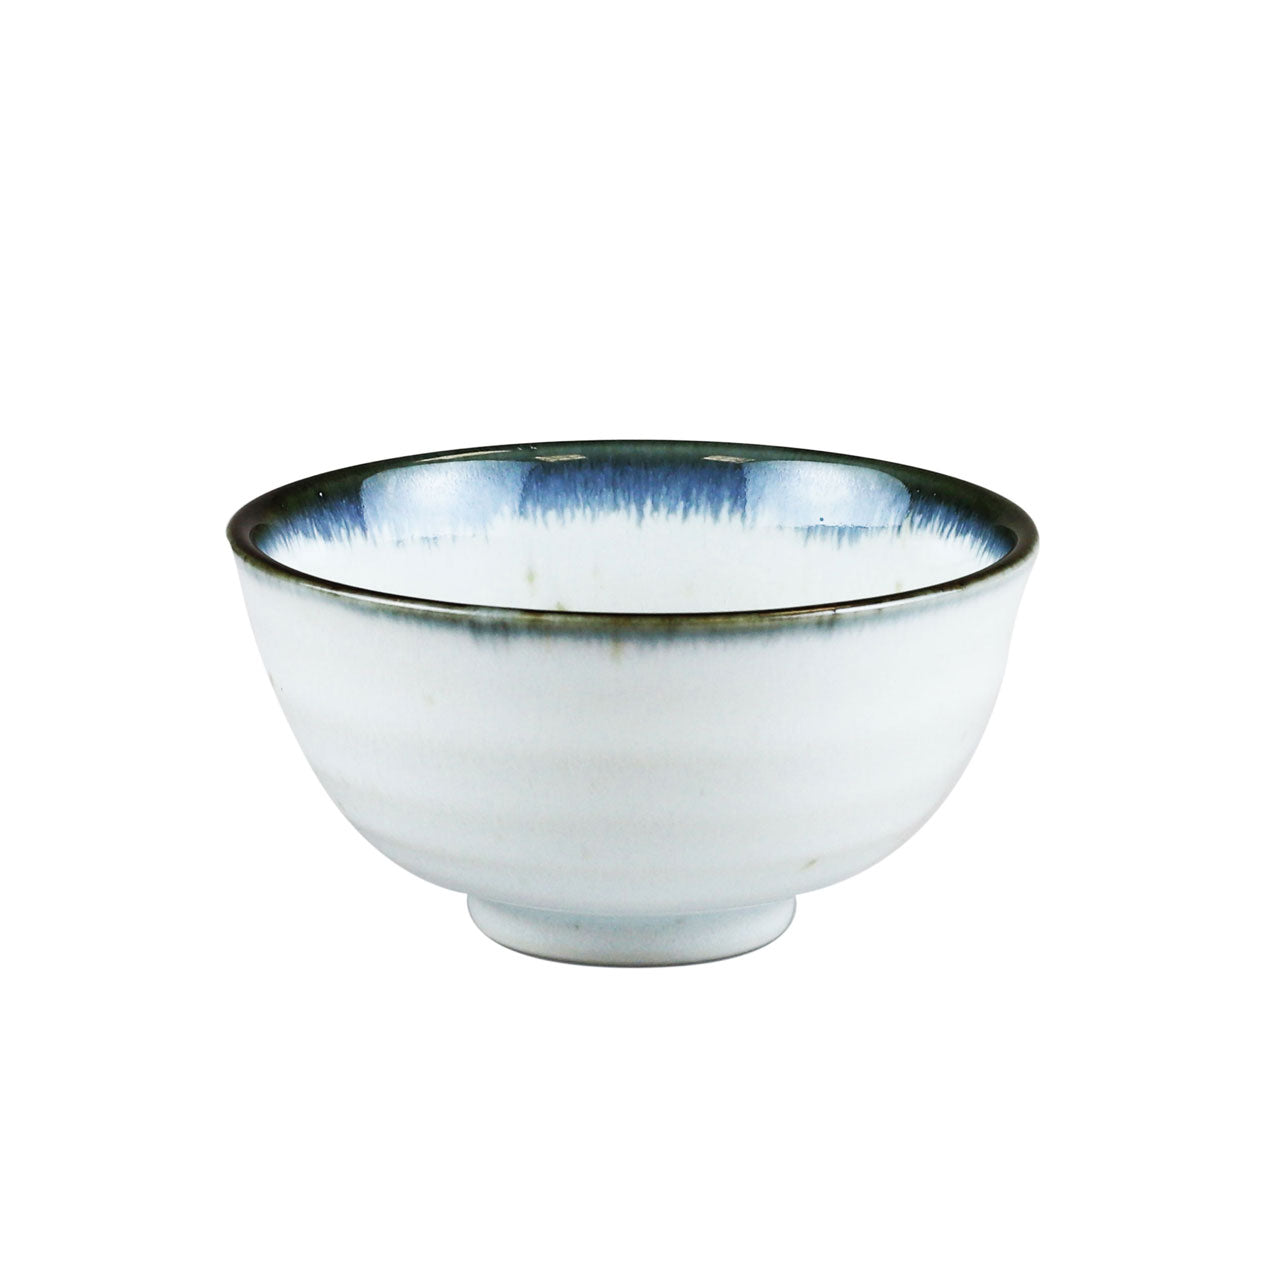 "Shirokinyo Ivory Speckled Rice Bowl with Indigo Rim 13.5 fl oz / 4.96"" dia"